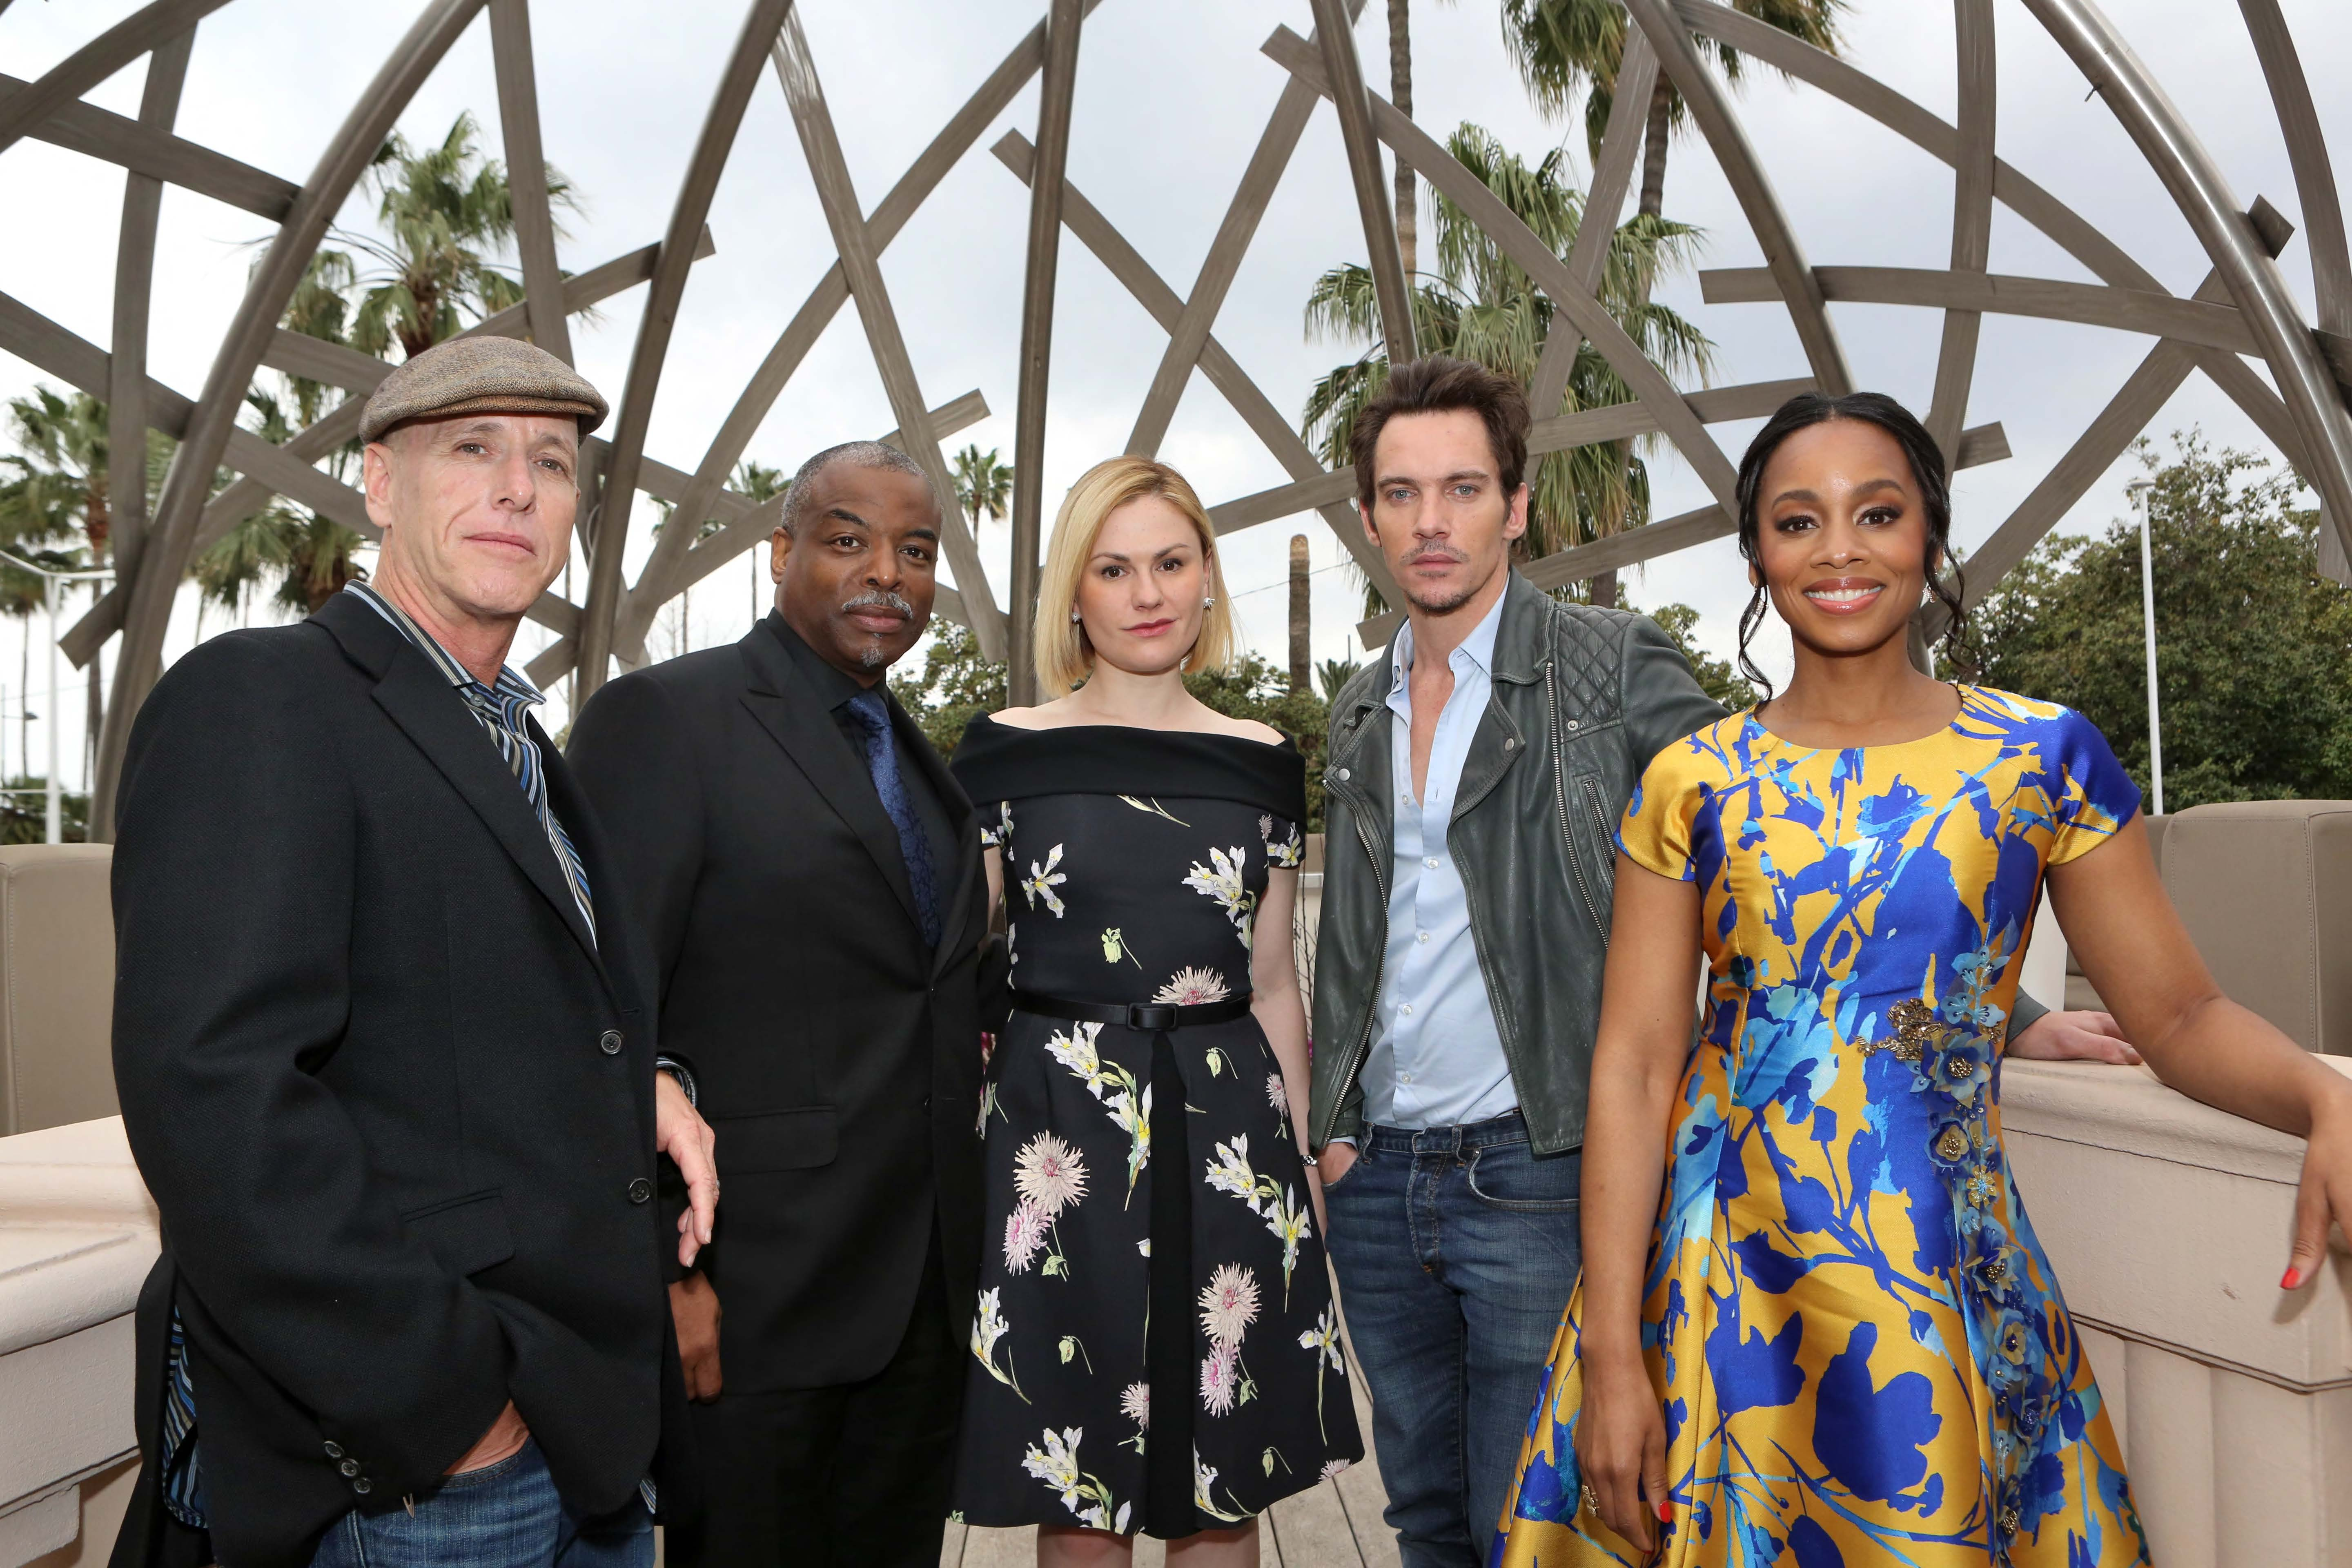 A+E's ROOTS: Mark Wolper, LeVar Burton, Anna Paquin, Jonathan Rhys-Meyers and Anika Noni Rose